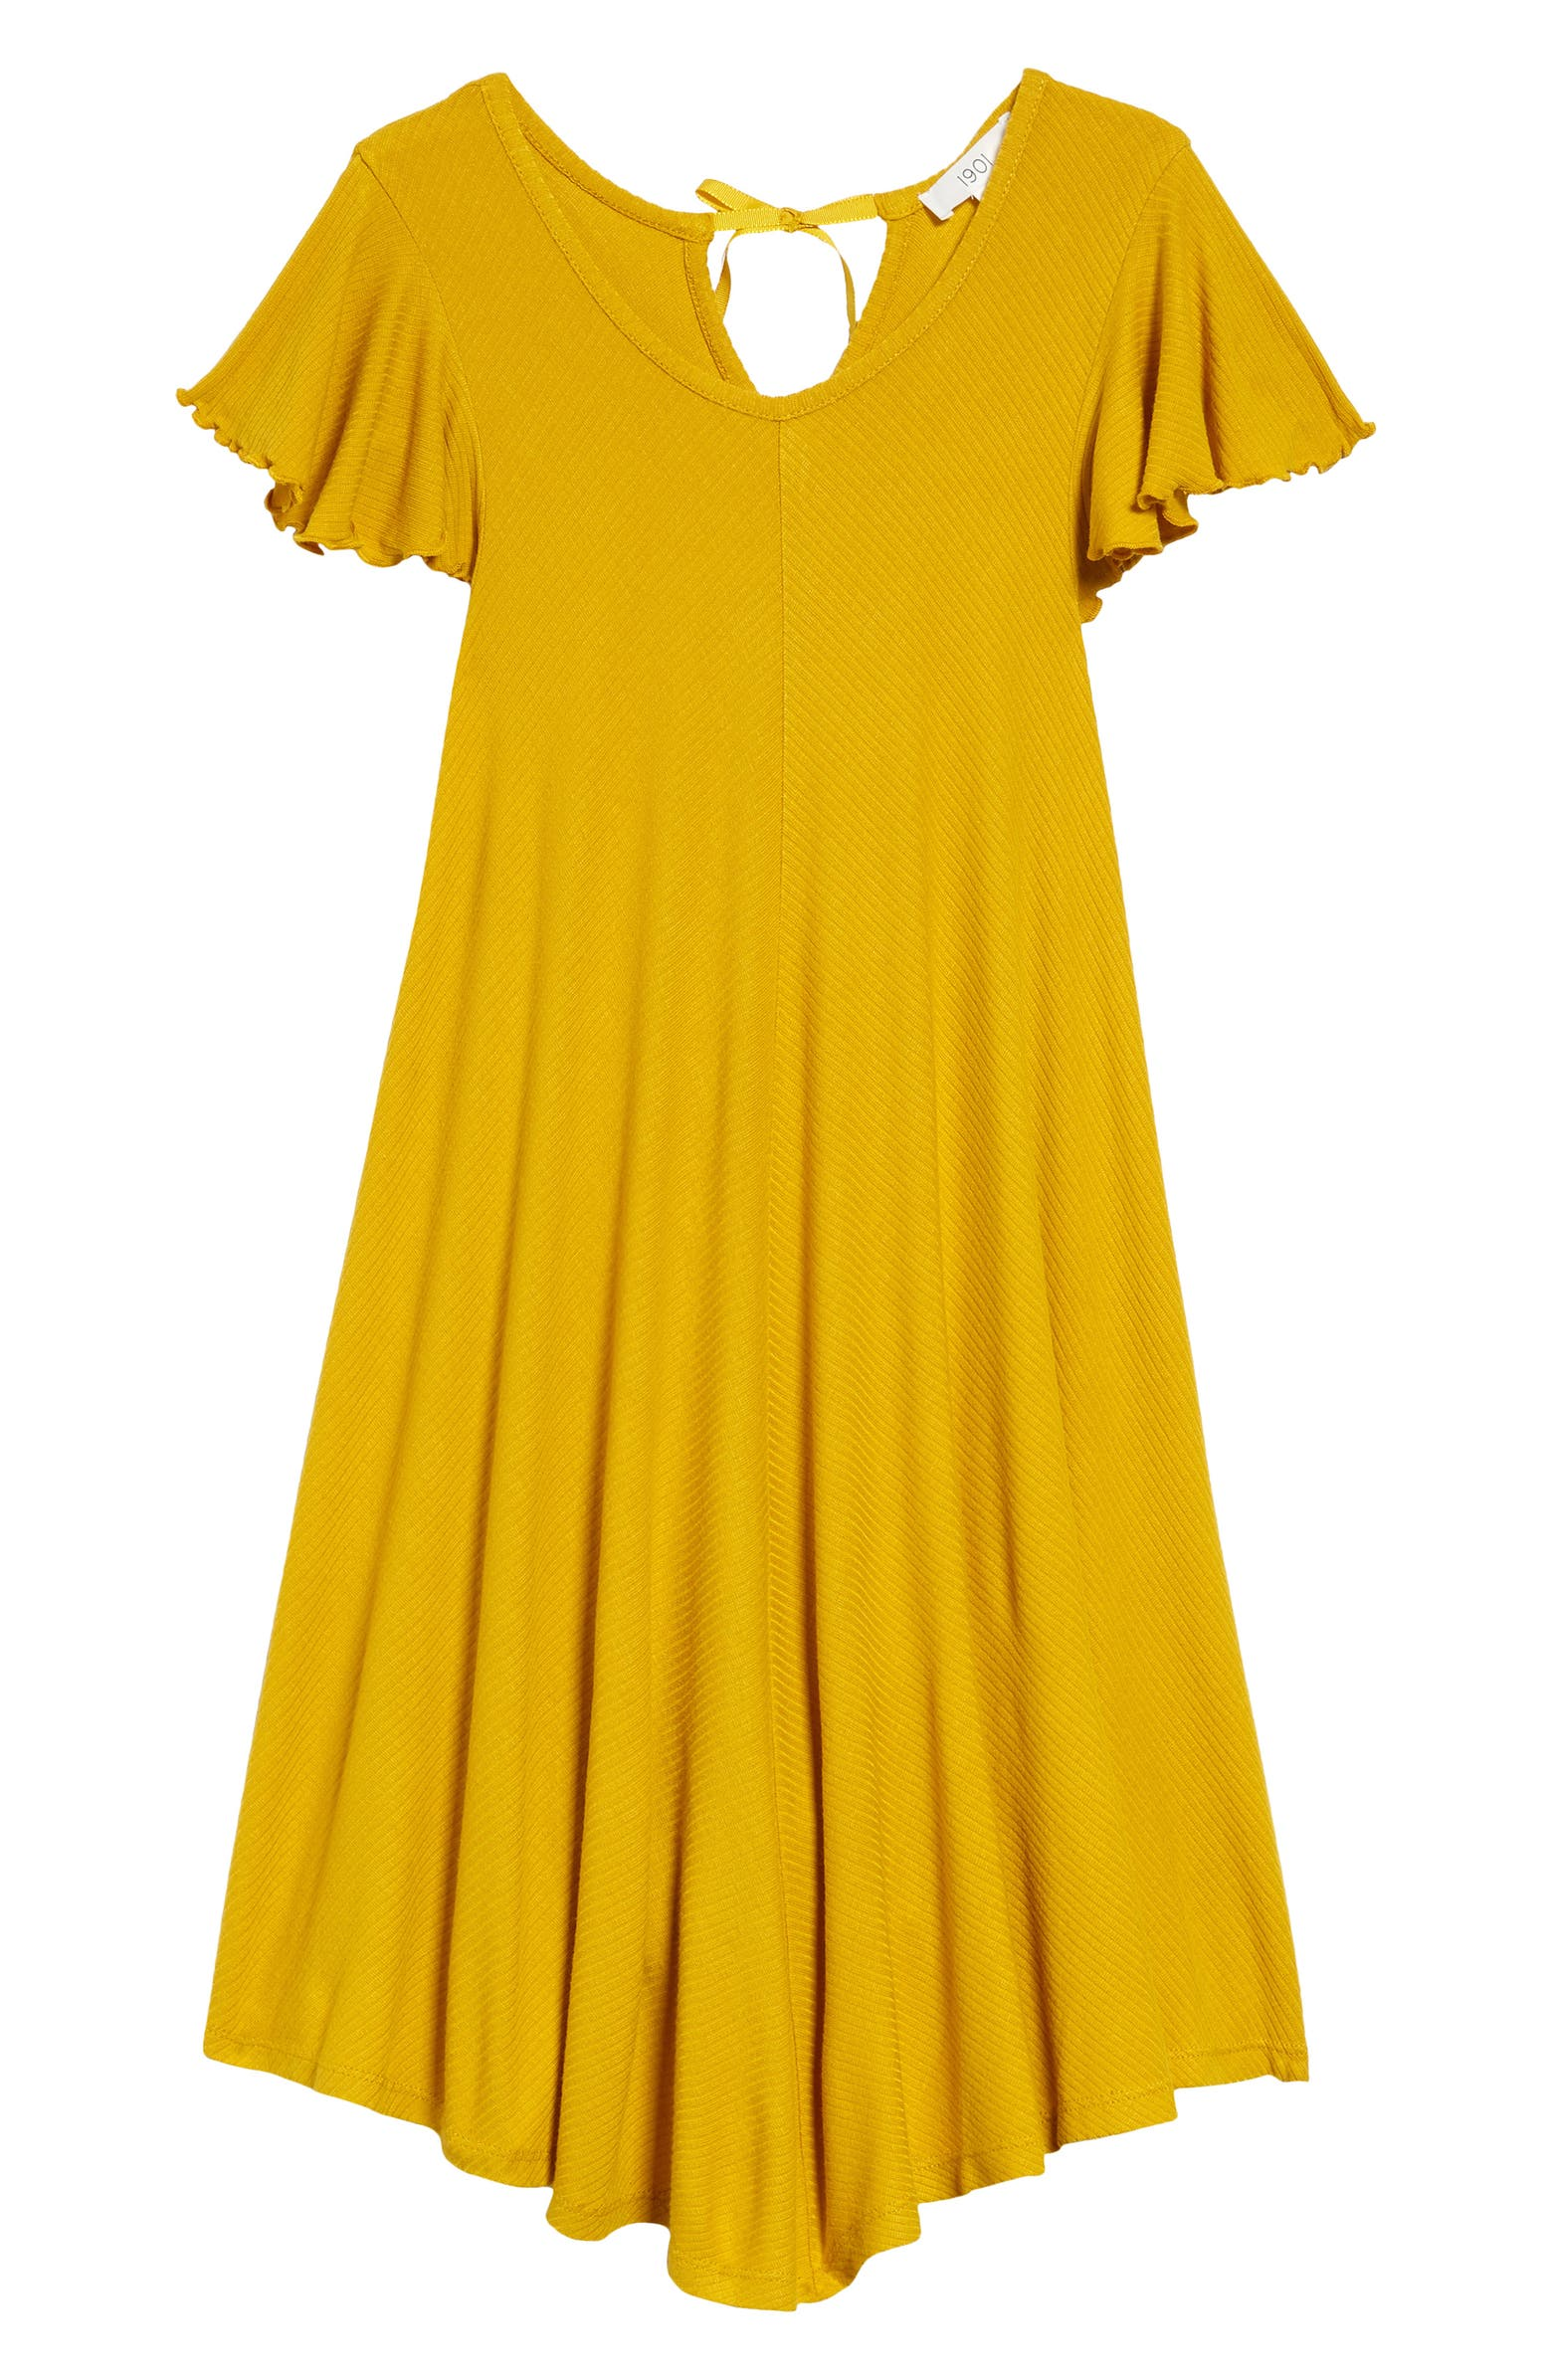 Kids' yellow flutter-sleeve dress